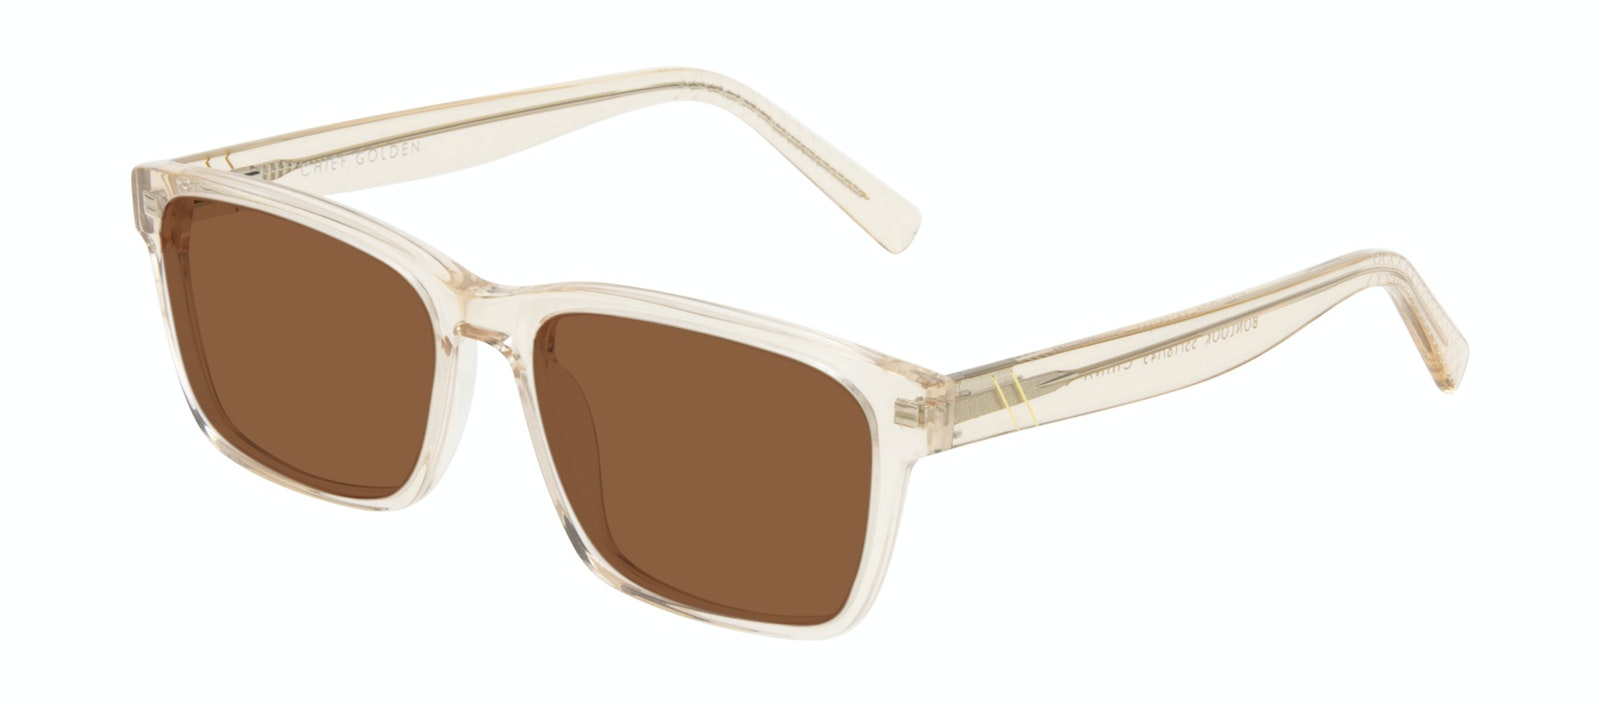 Affordable Fashion Glasses Square Sunglasses Men Chief Golden Tilt